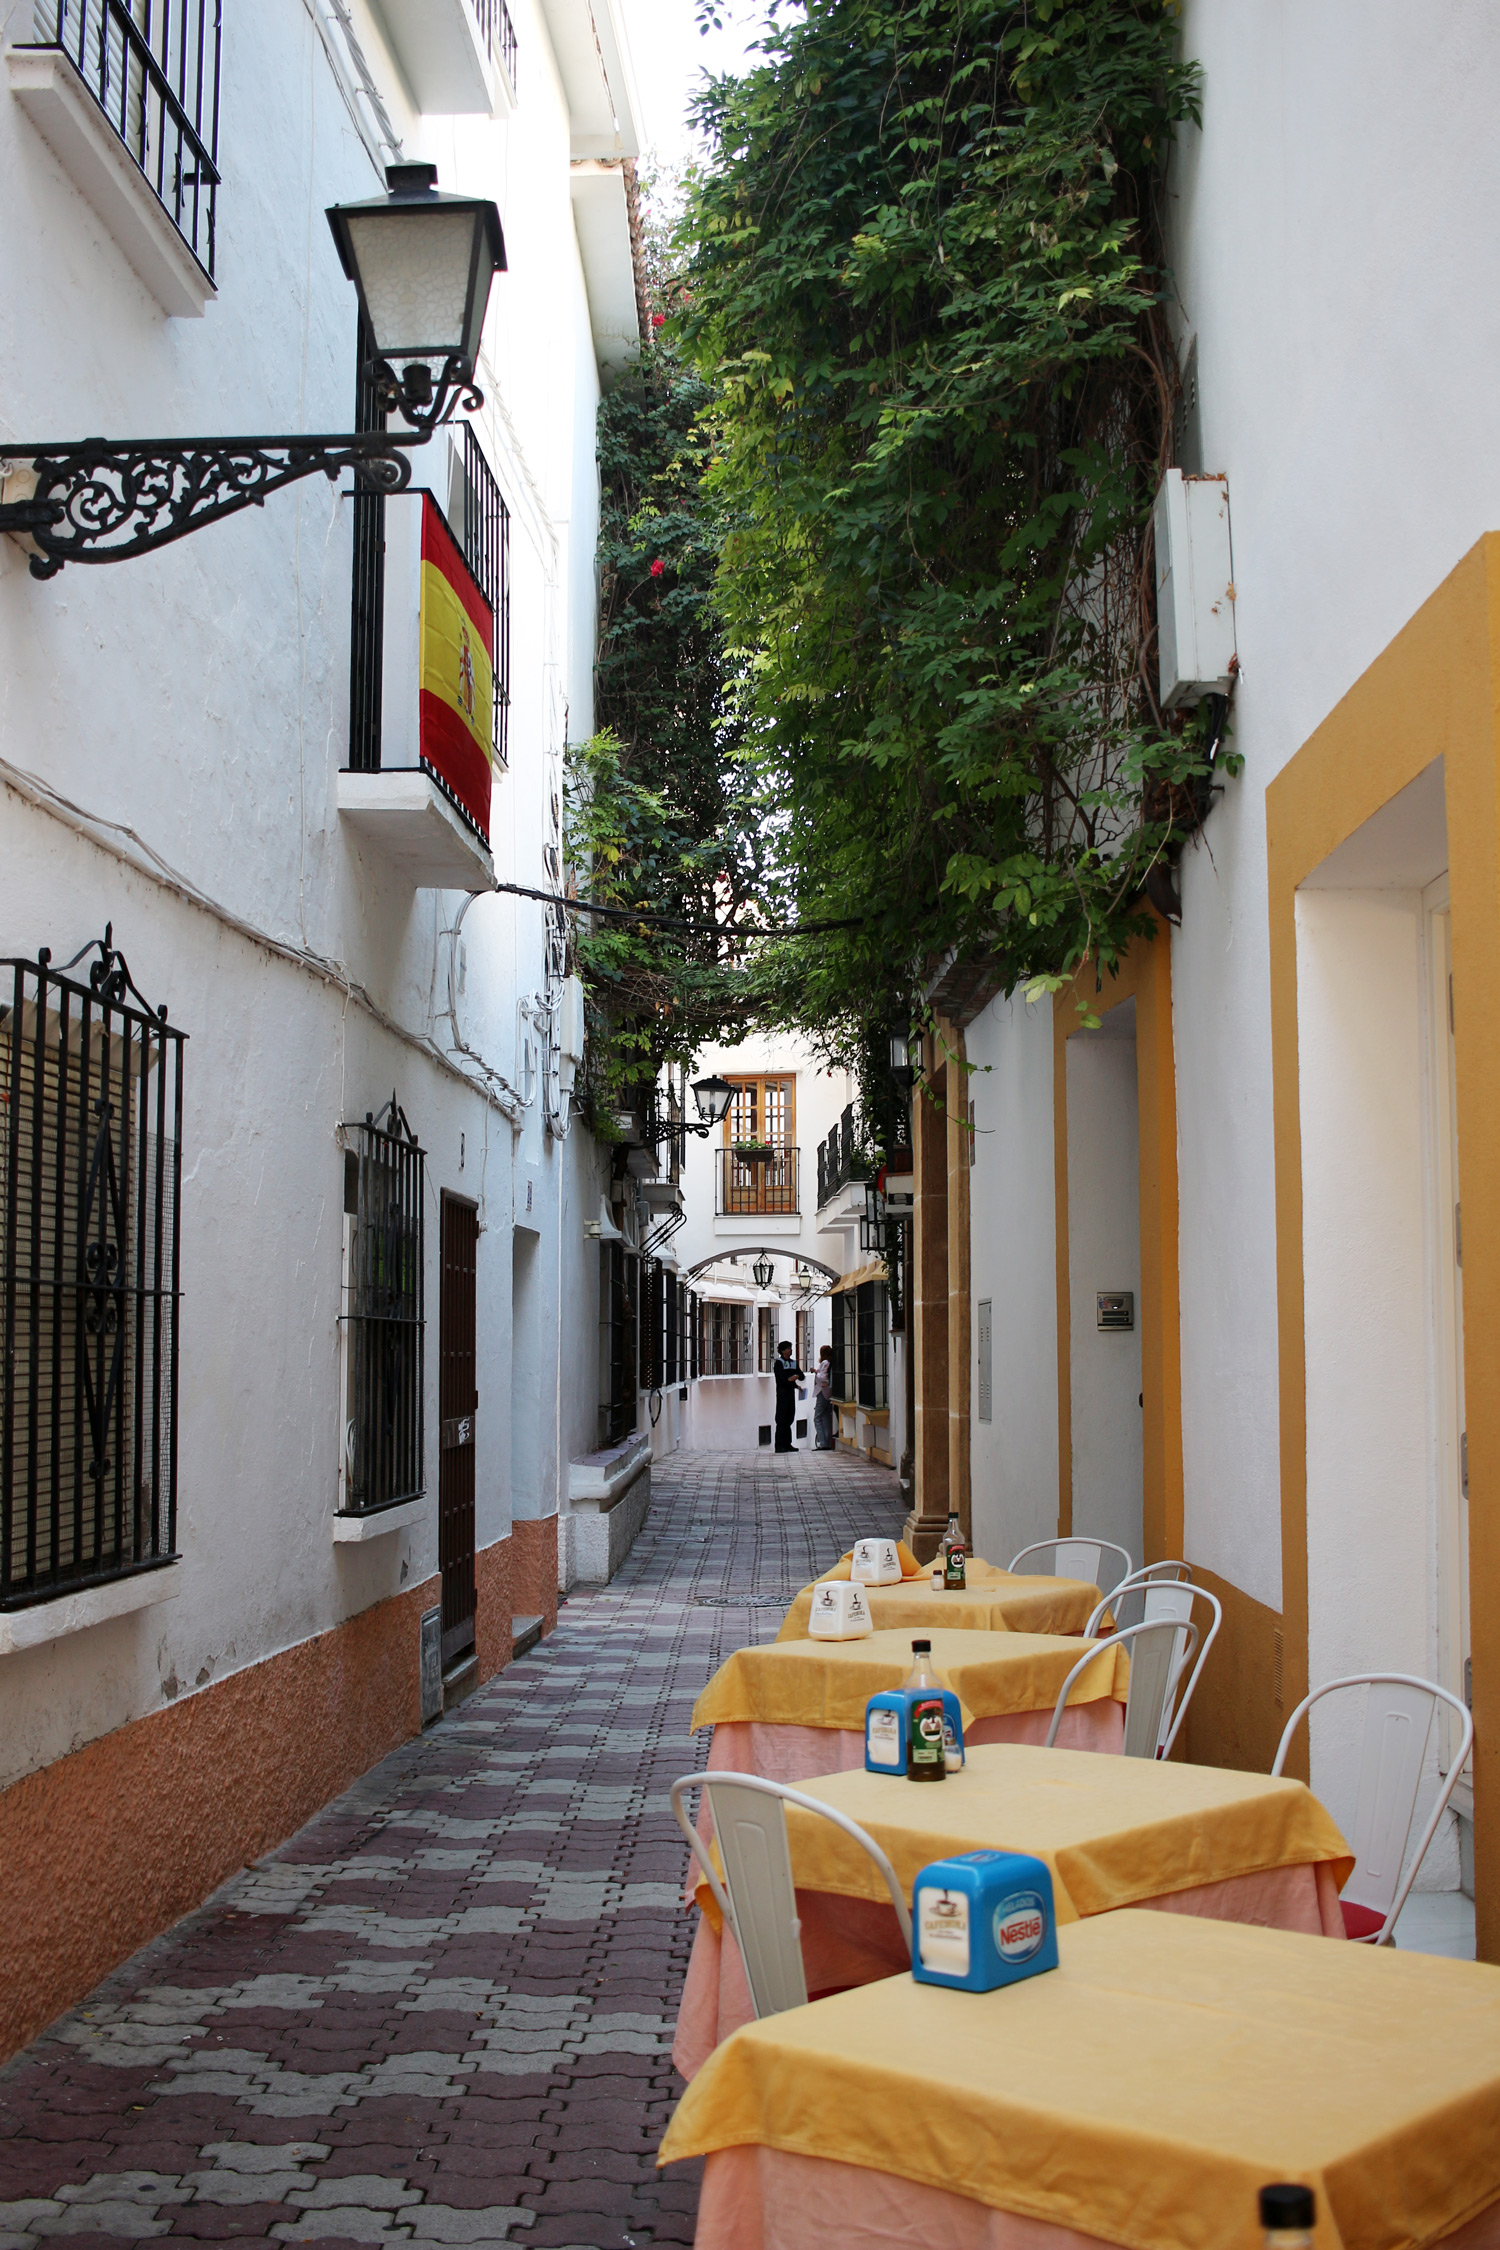 marbella-malaga-spain-travel-blogger-old-town-marbella-7